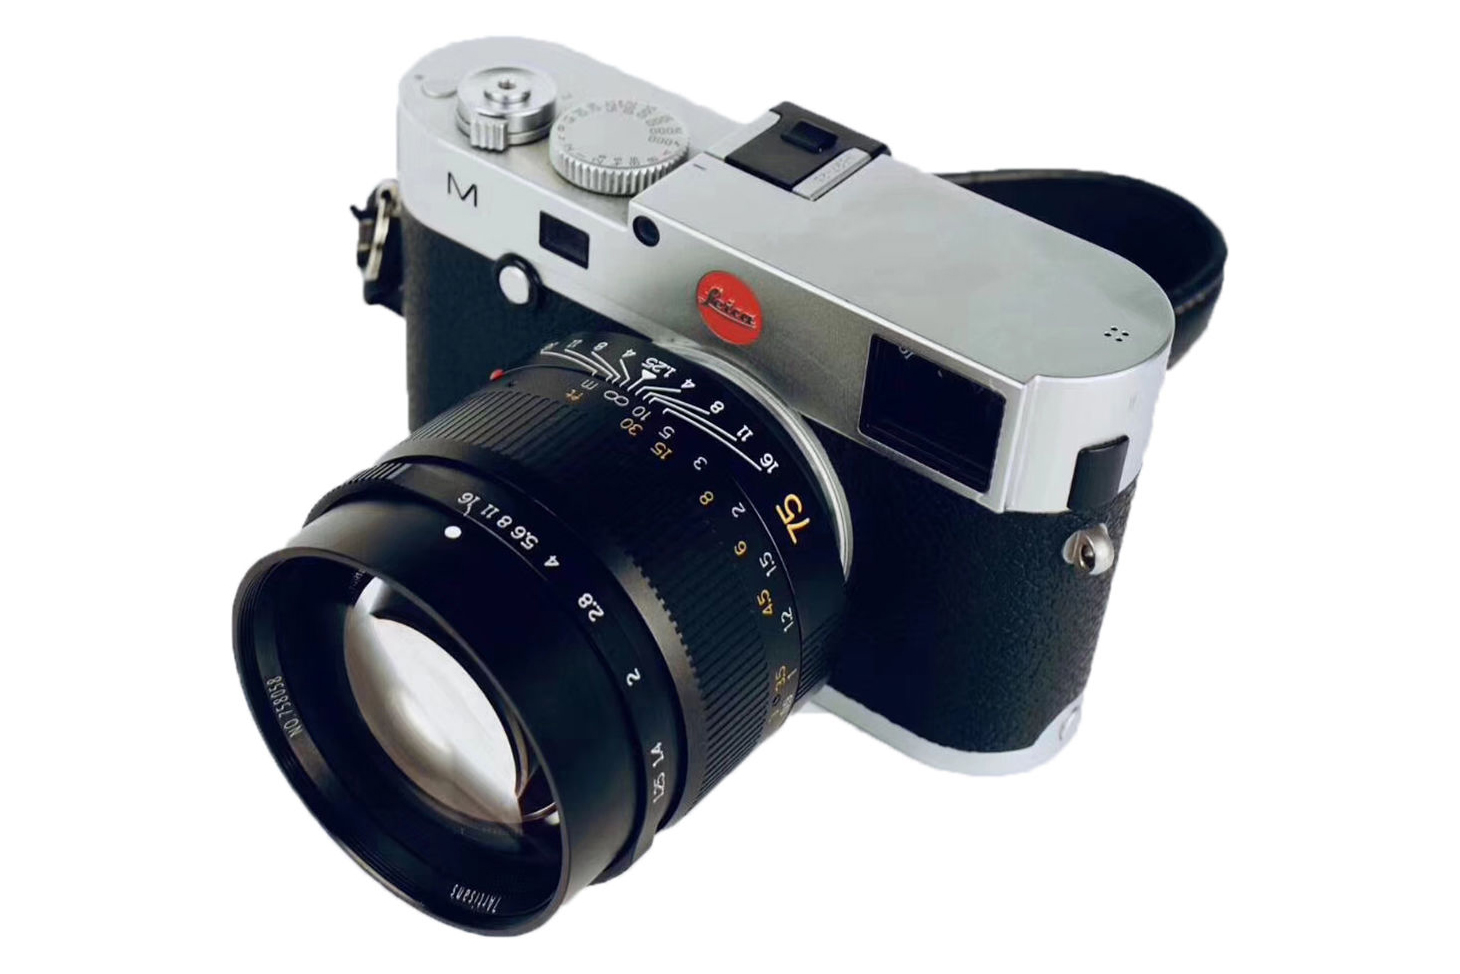 Kit out your Leica with a super fast 75mm f/1.25 for under £400! | Digital Camera World